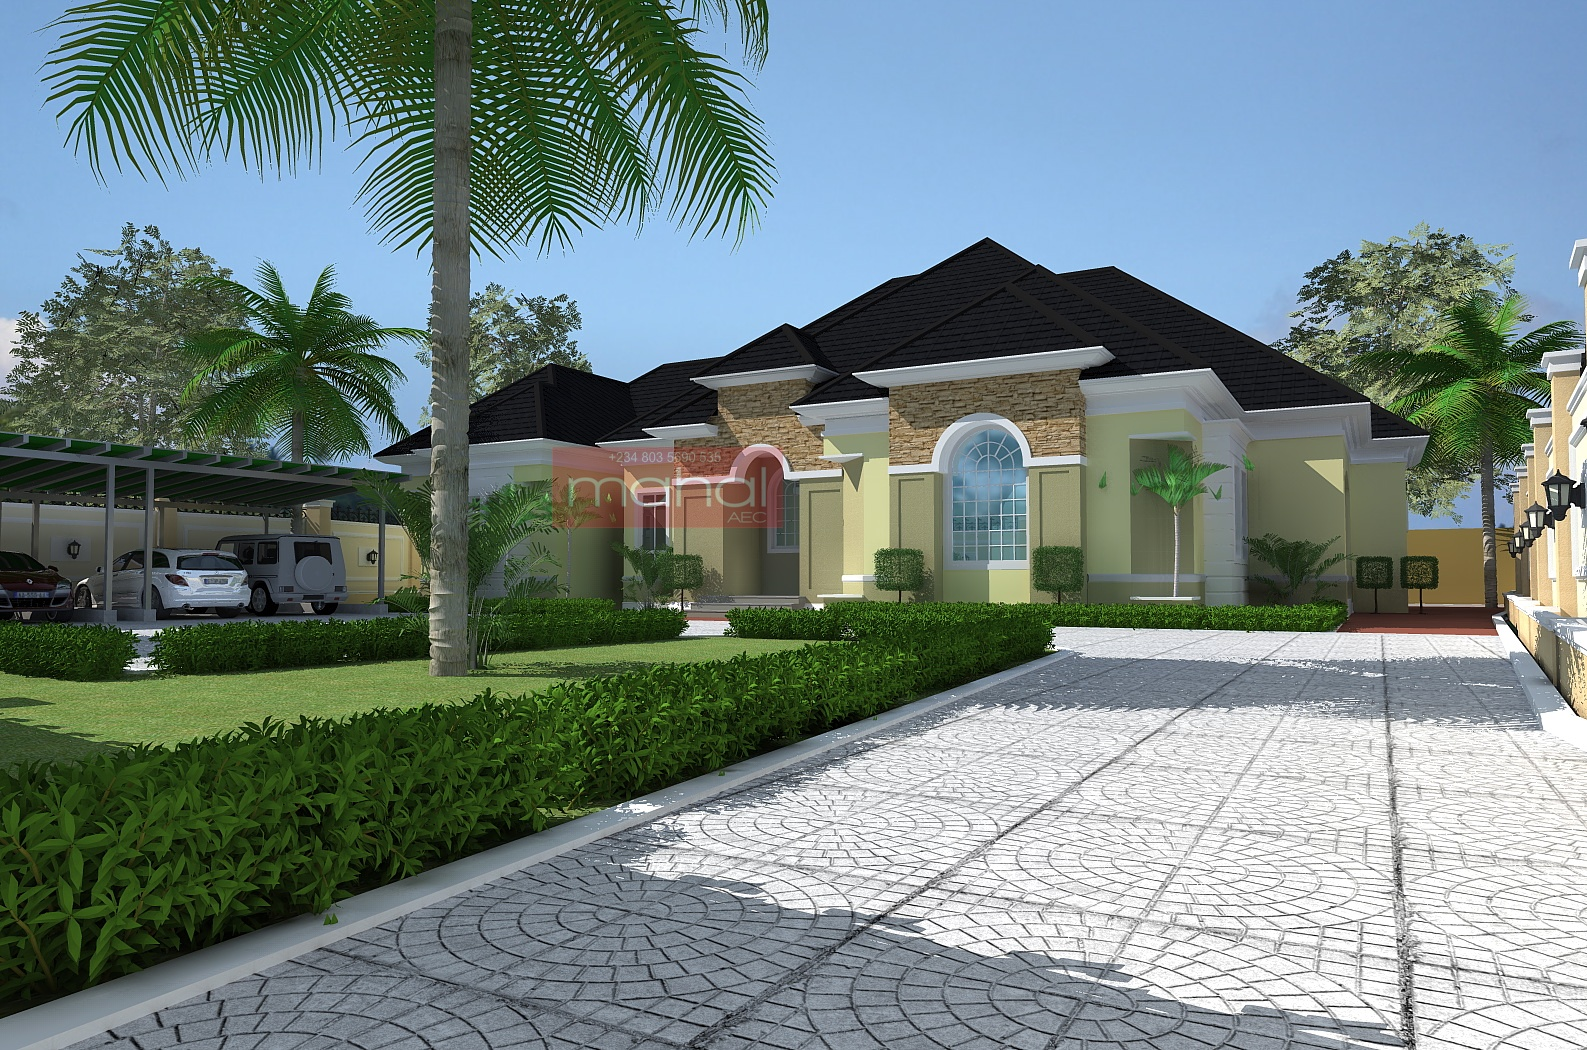 Contemporary nigerian residential architecture luxury 5 for Luxury bungalow house plans